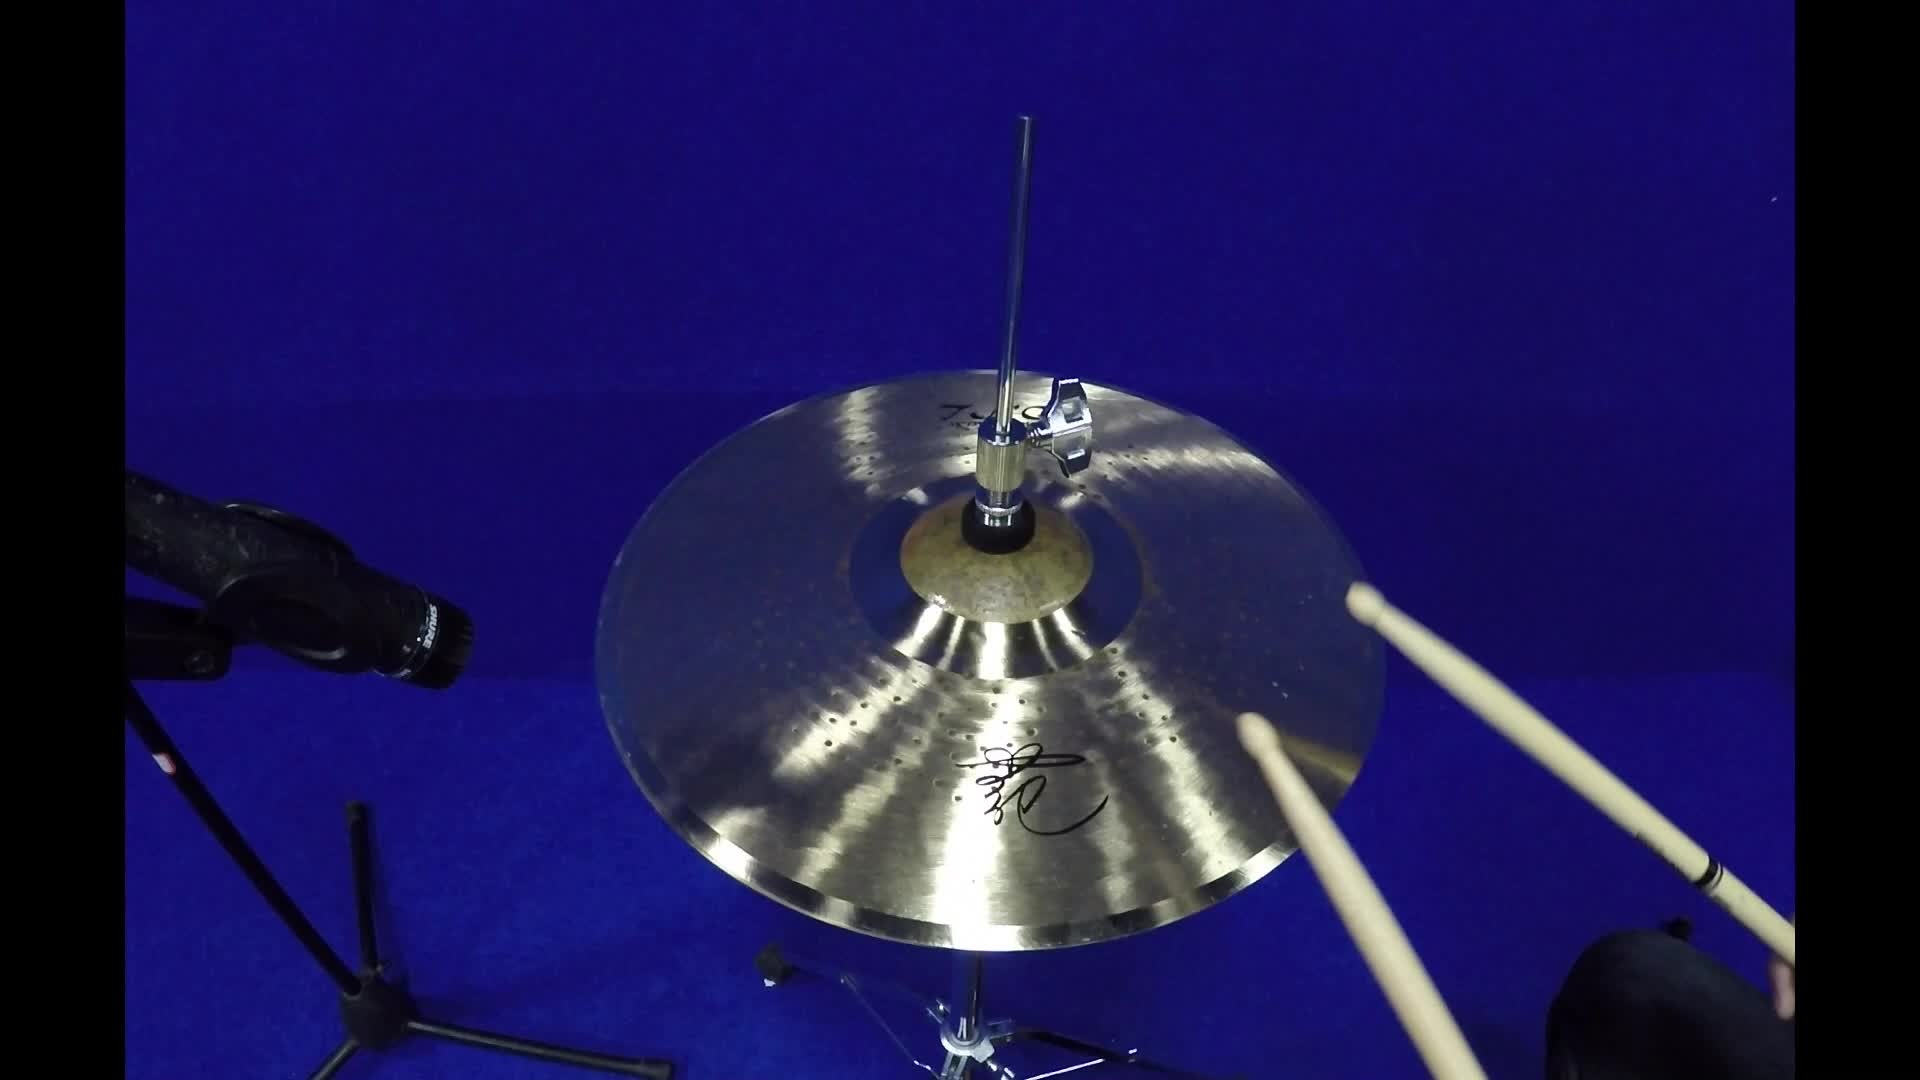 Oem professional handmade 14 inch pair cymbals on cymbal stand